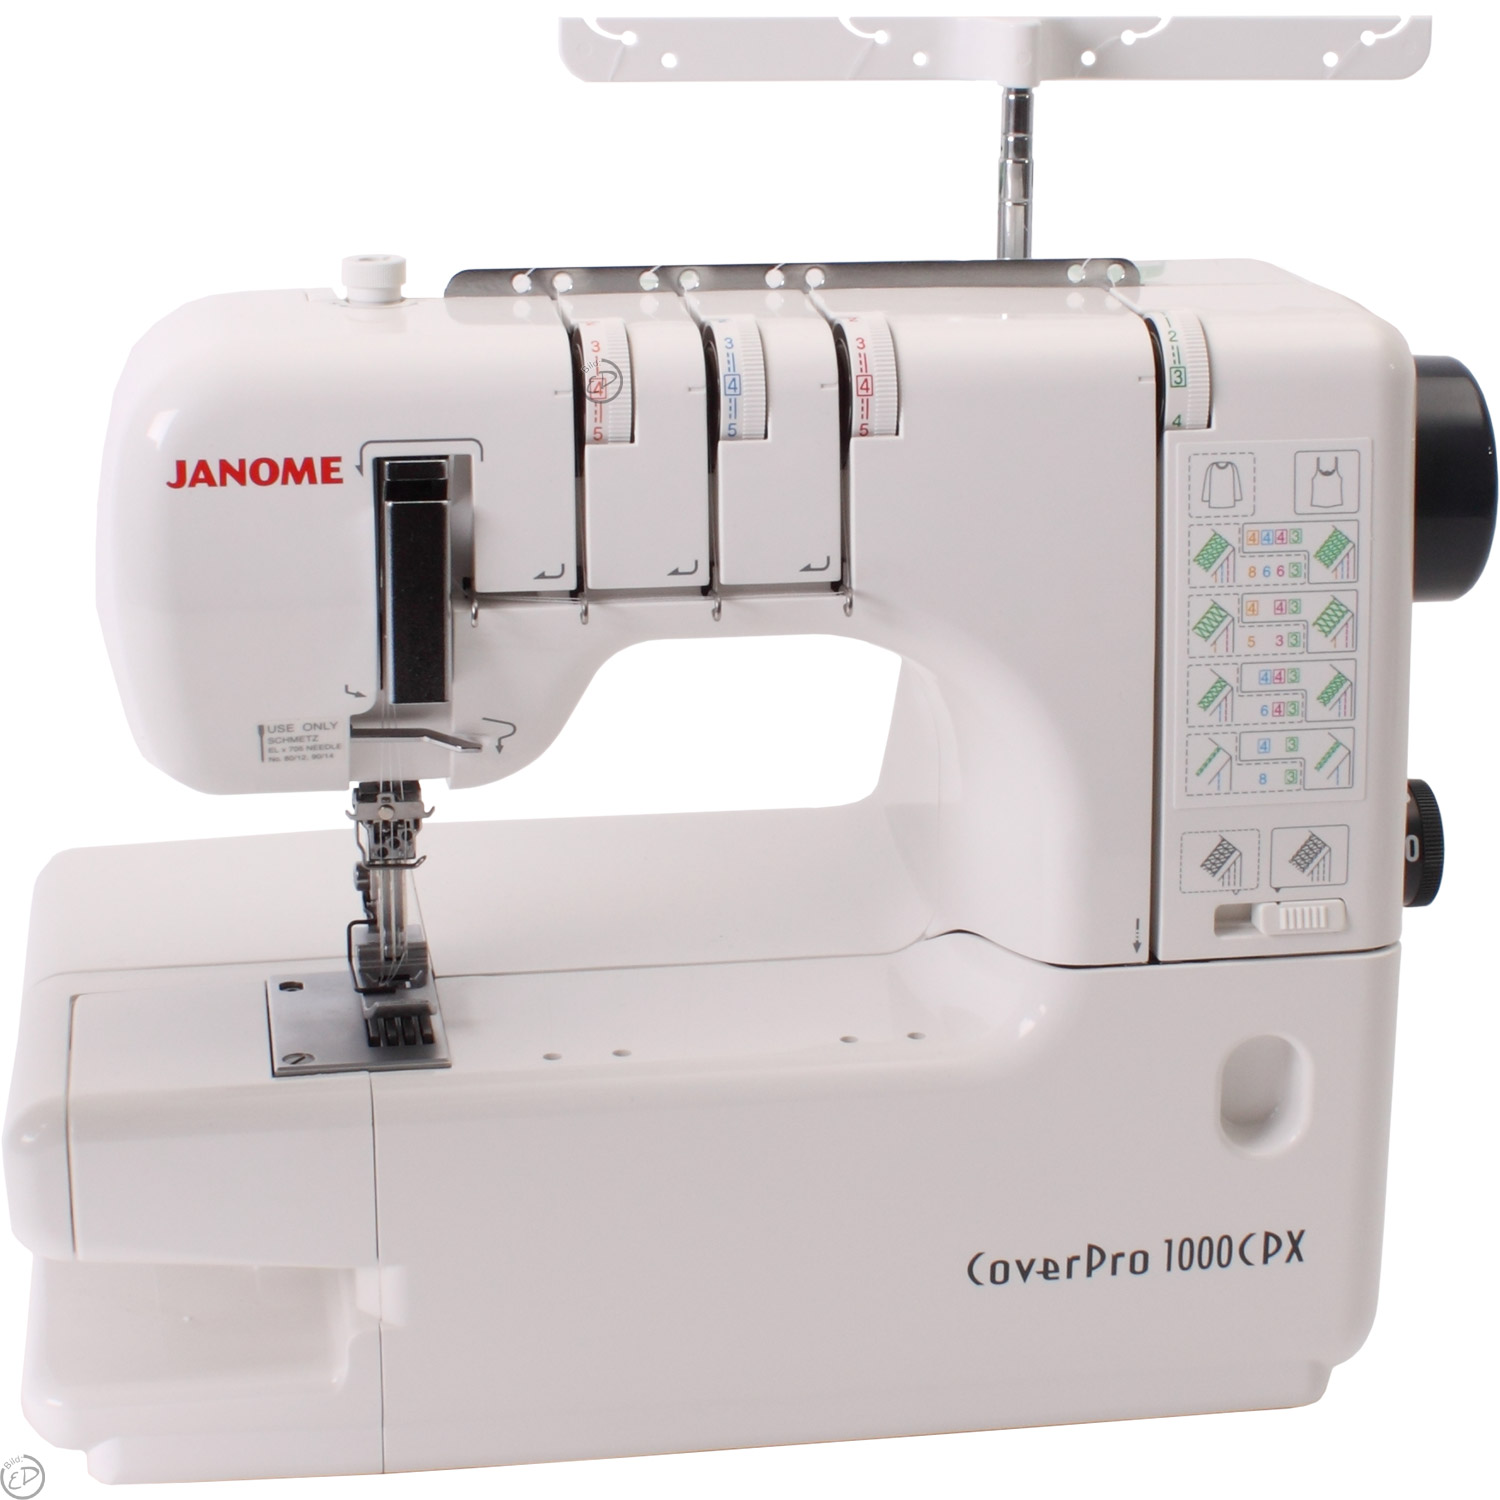 Covermaschine Janome Cover Pro 1000 CPX im nähPark kaufen